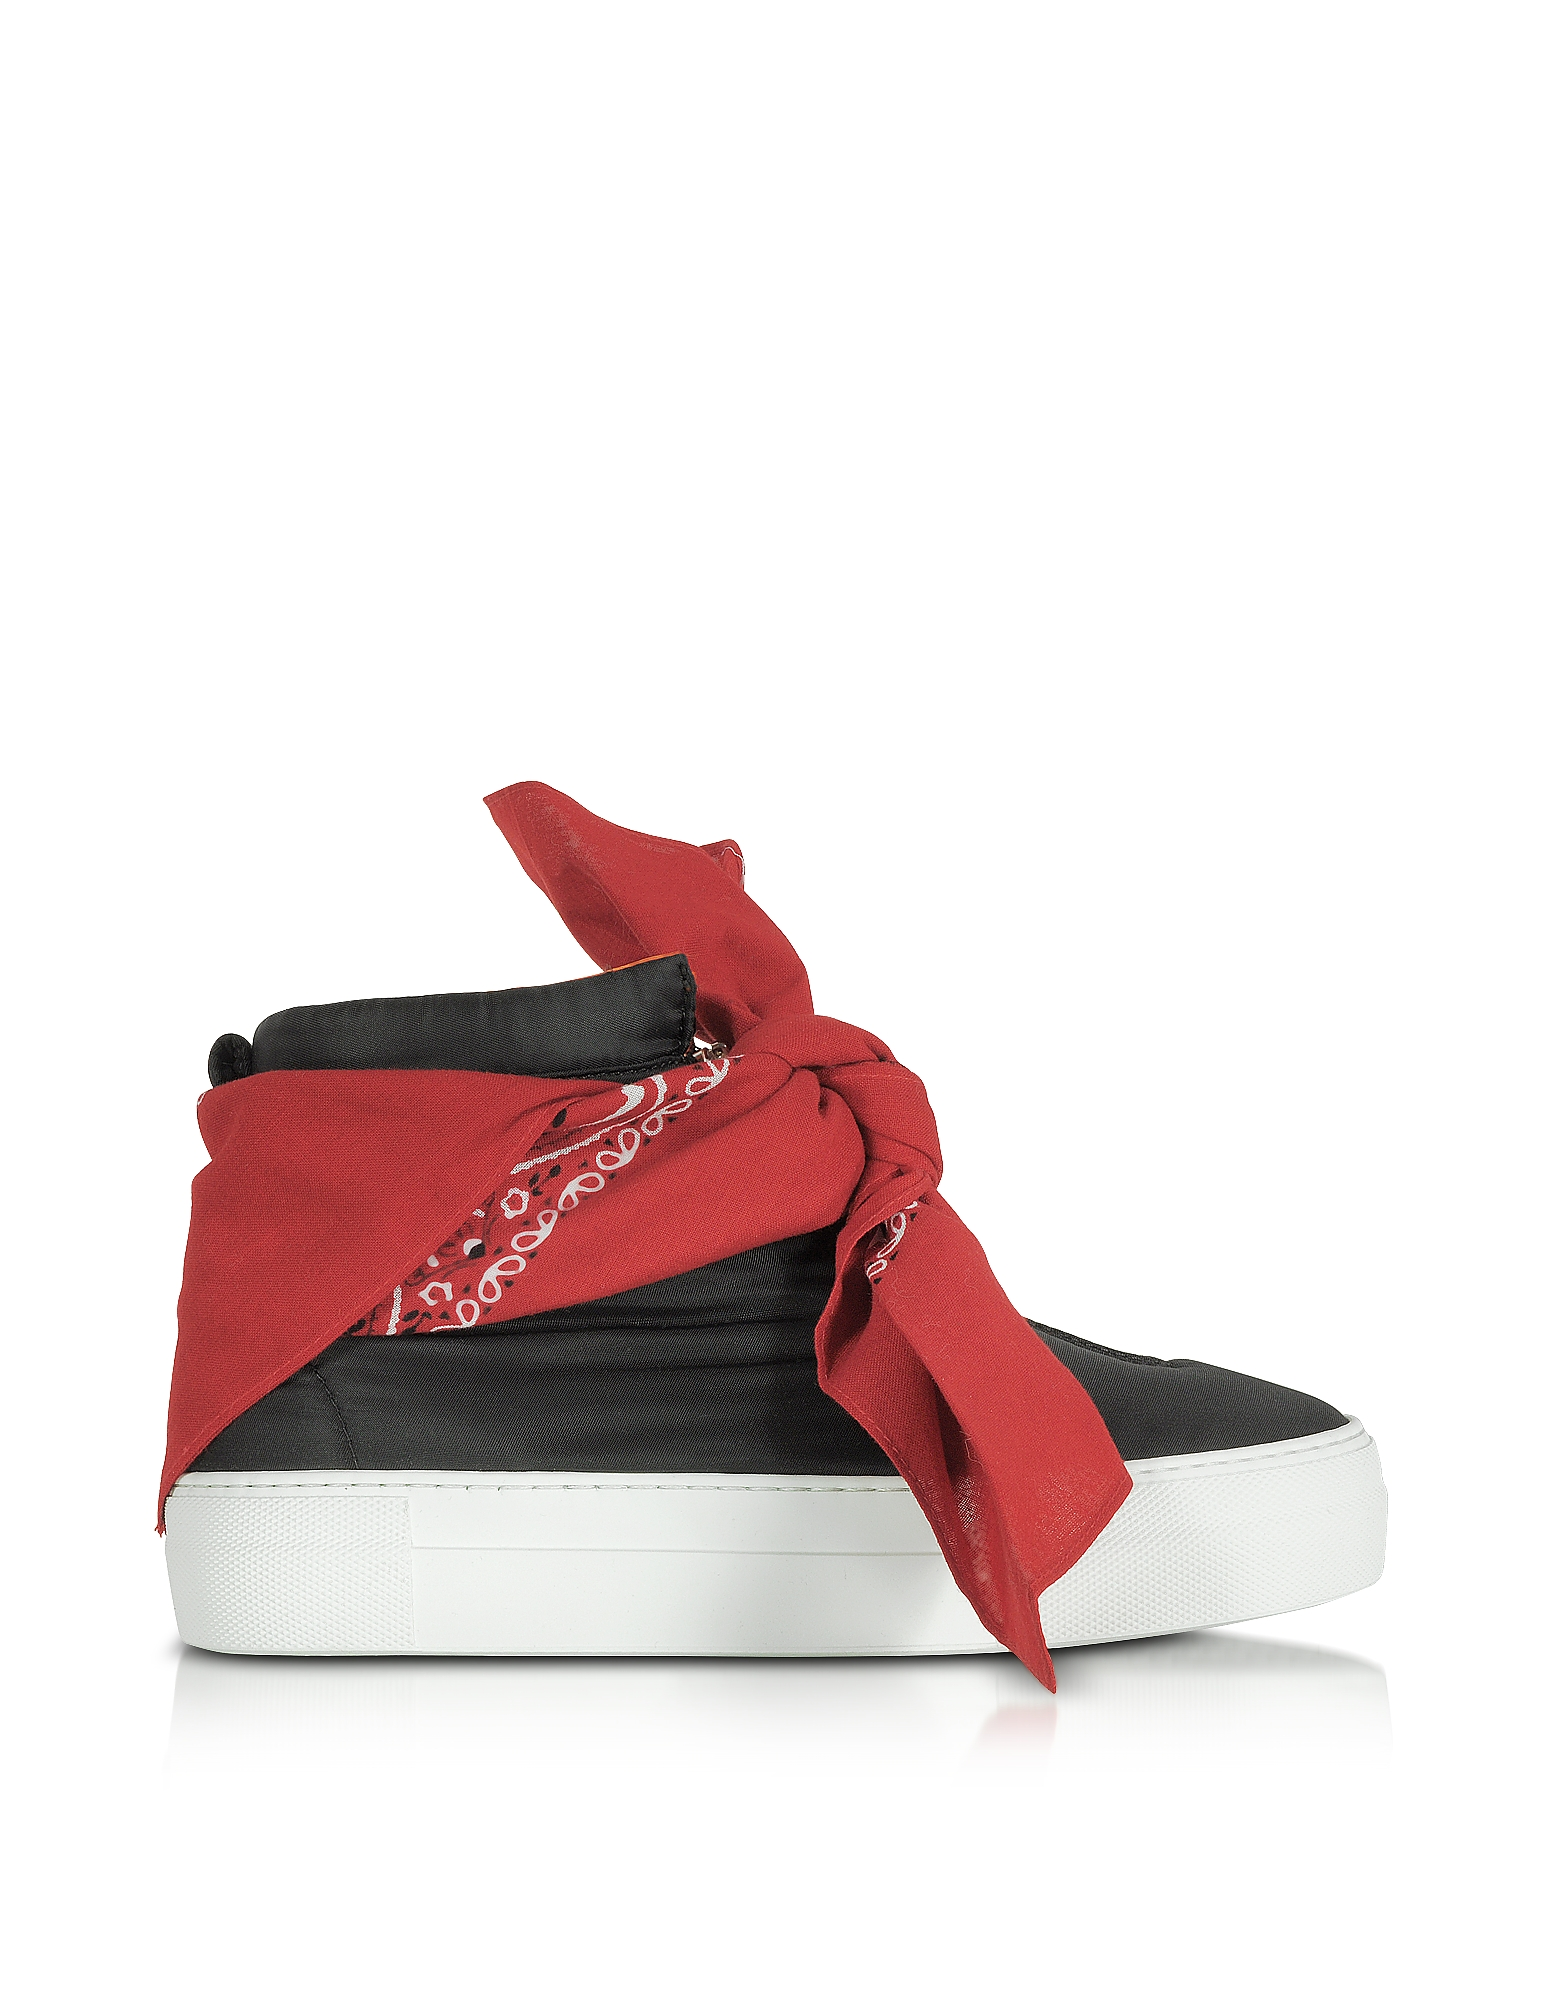 Joshua Sanders Shoes, Black Nylon High Top Bandana Sneakers